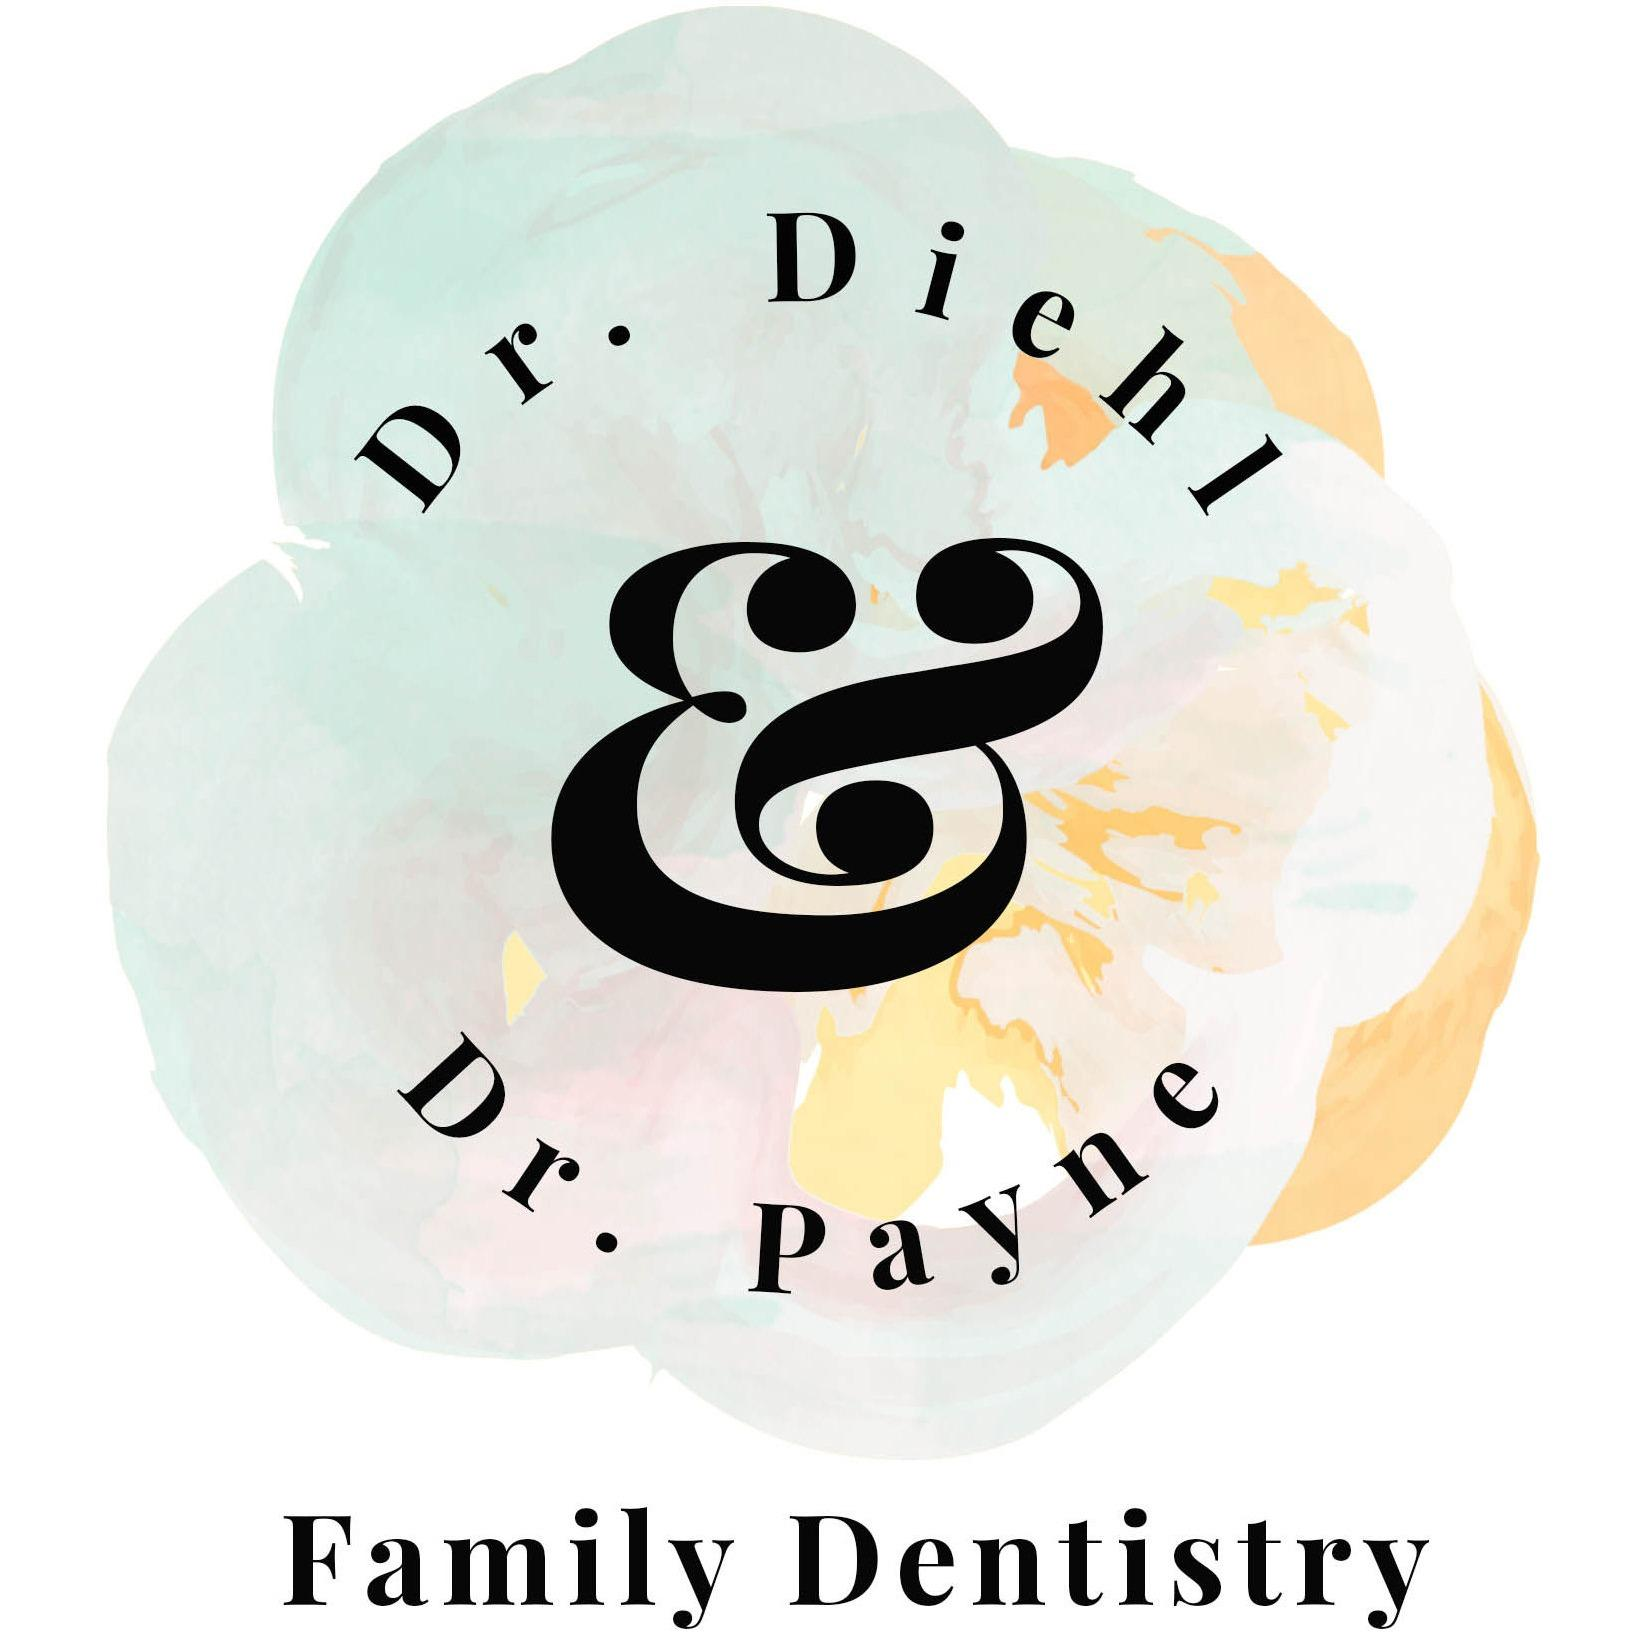 Dr. Diehl and Dr. Payne Family Dental